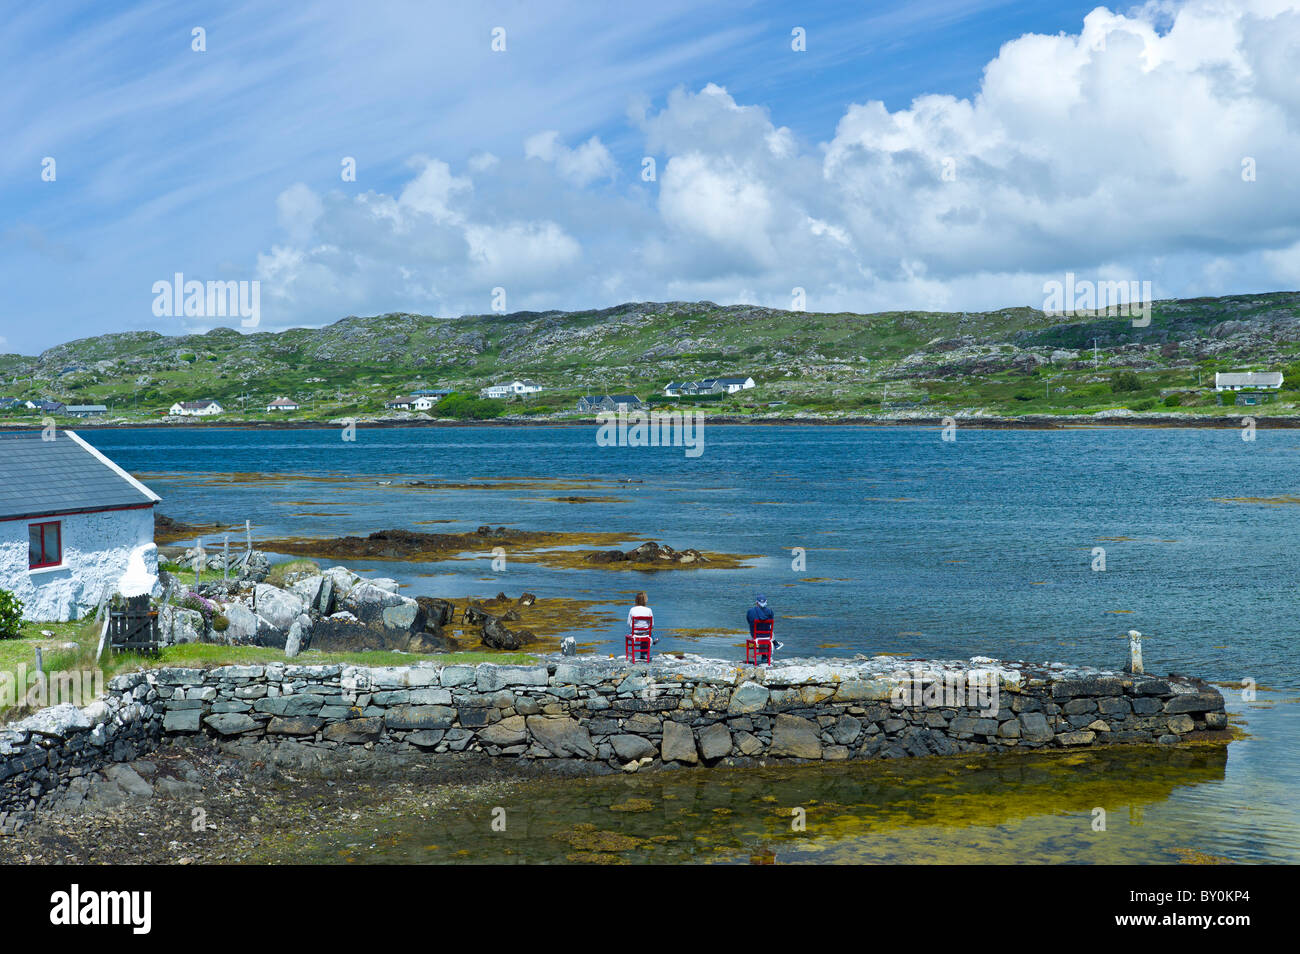 Couple enjoying the view in Connemara National Park, County Galway, Ireland - Stock Image